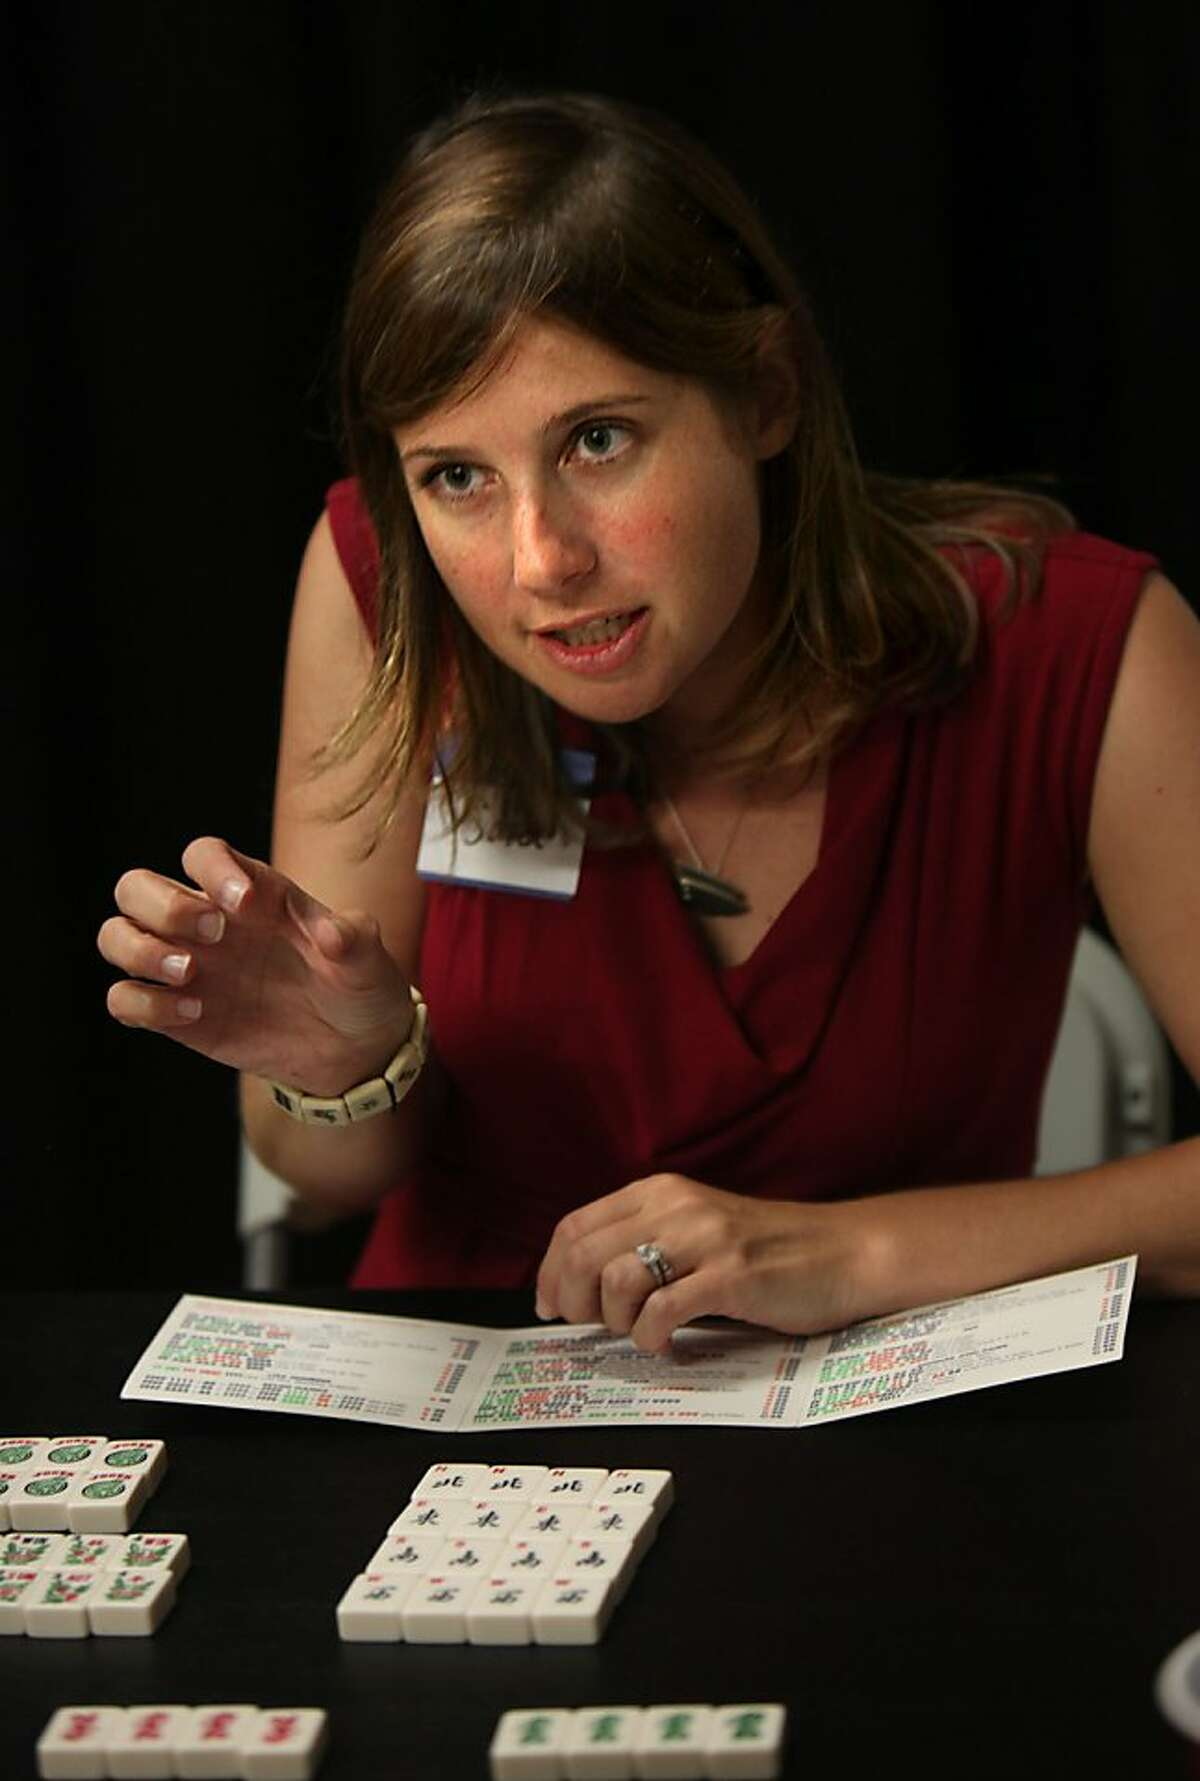 Mahjong enthusiast Sara Linden teaching the game of Mahjong to several beginners at her friend's photo studio in a building at Dogpatch in San Francisco, California, on Tuesday, September 27, 2011.